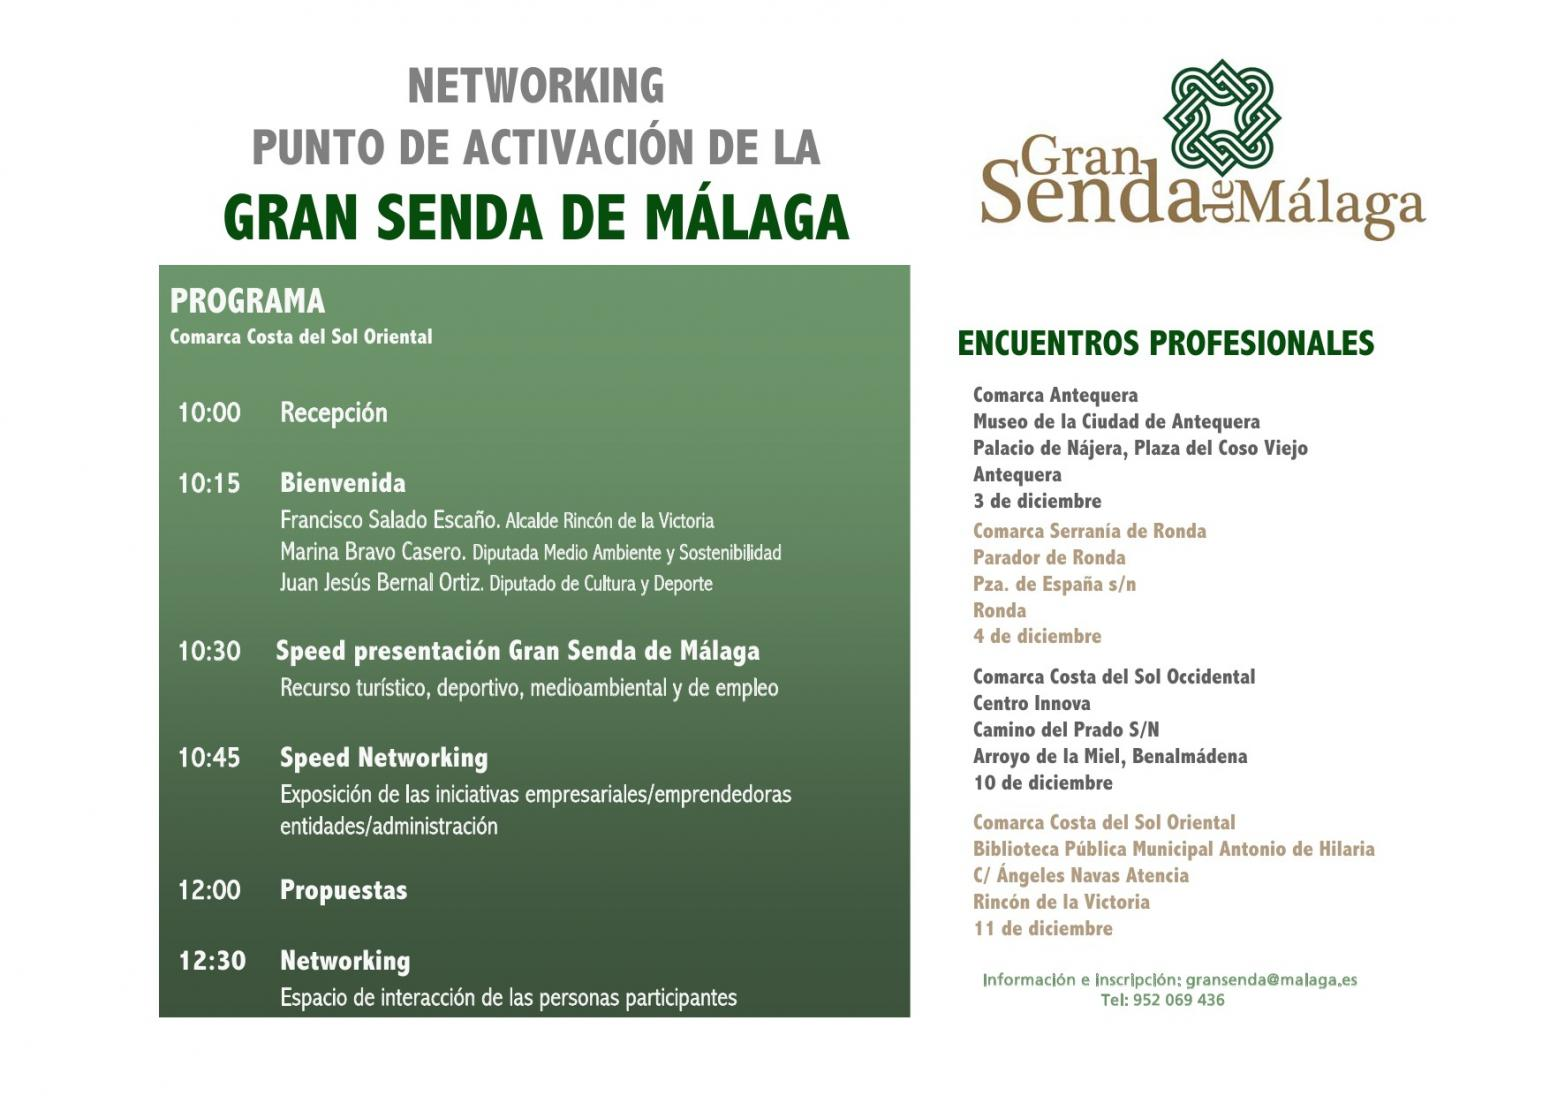 Imagen de Programa Networking Gran Senda de Málaga. Costa del Sol Occidental